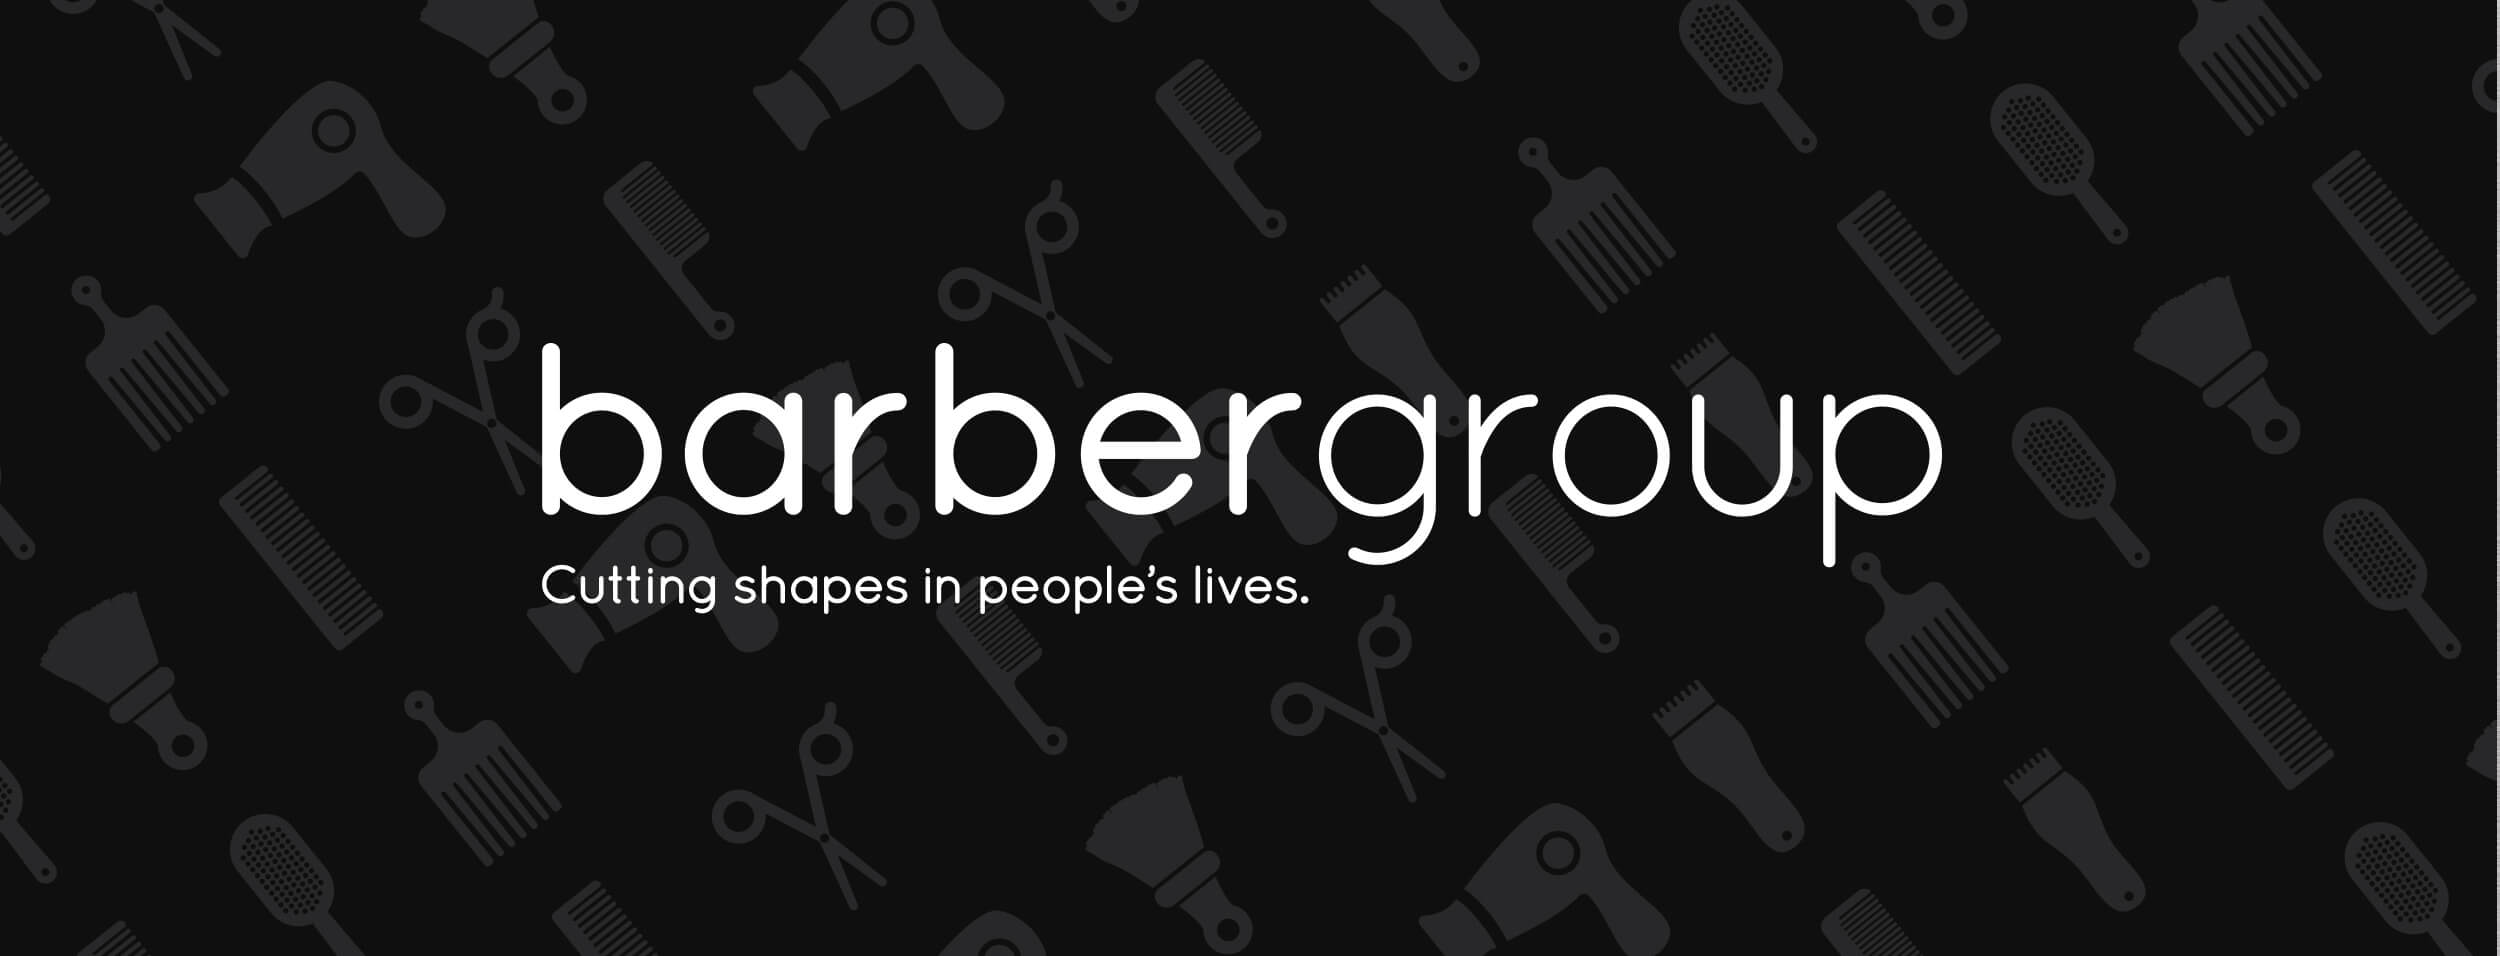 Final barbergroup logo